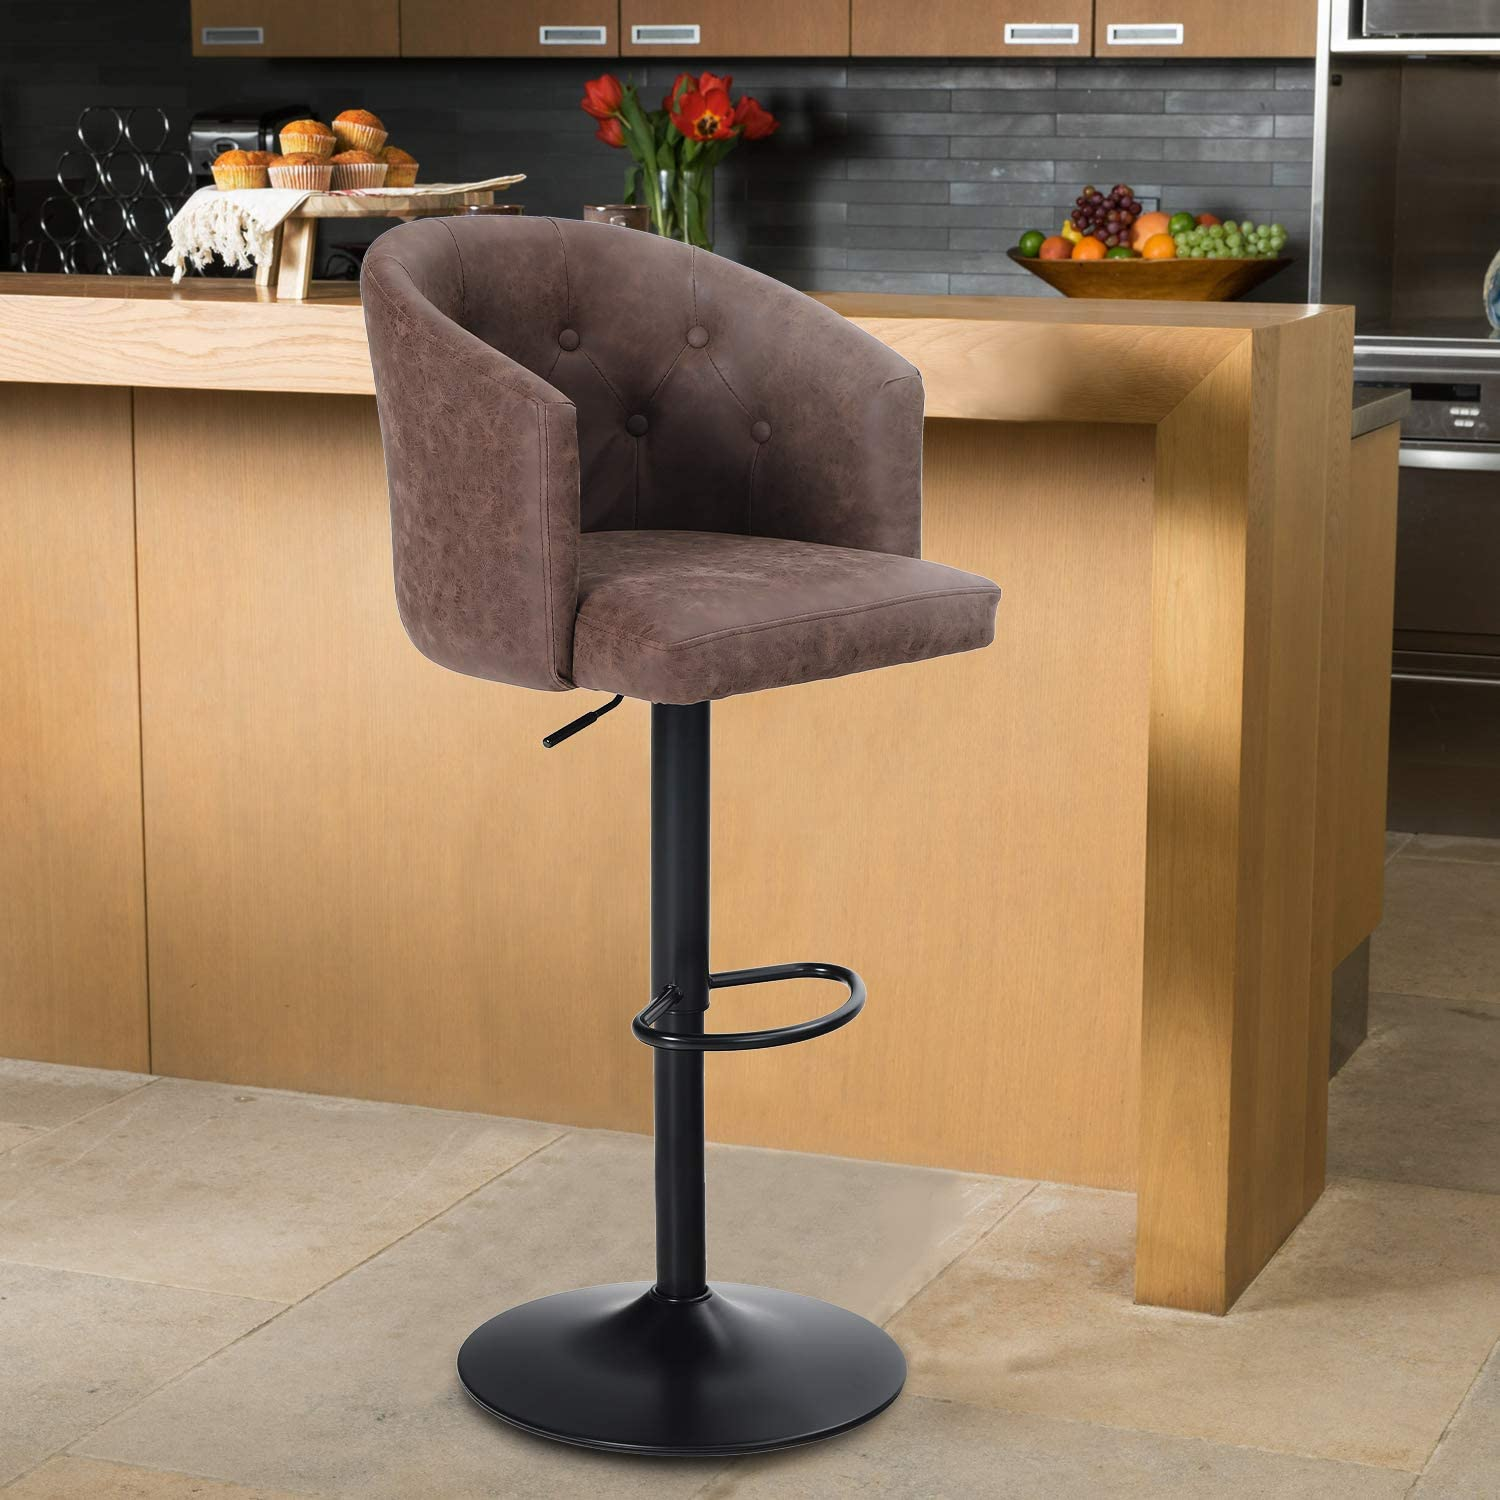 Maison Swivel Bar Stool with Back for Kitchen Counter Height Adjustable  Counter Height Barstool Chair with Ergonomic Mid Back for Kitchen Island,  ...